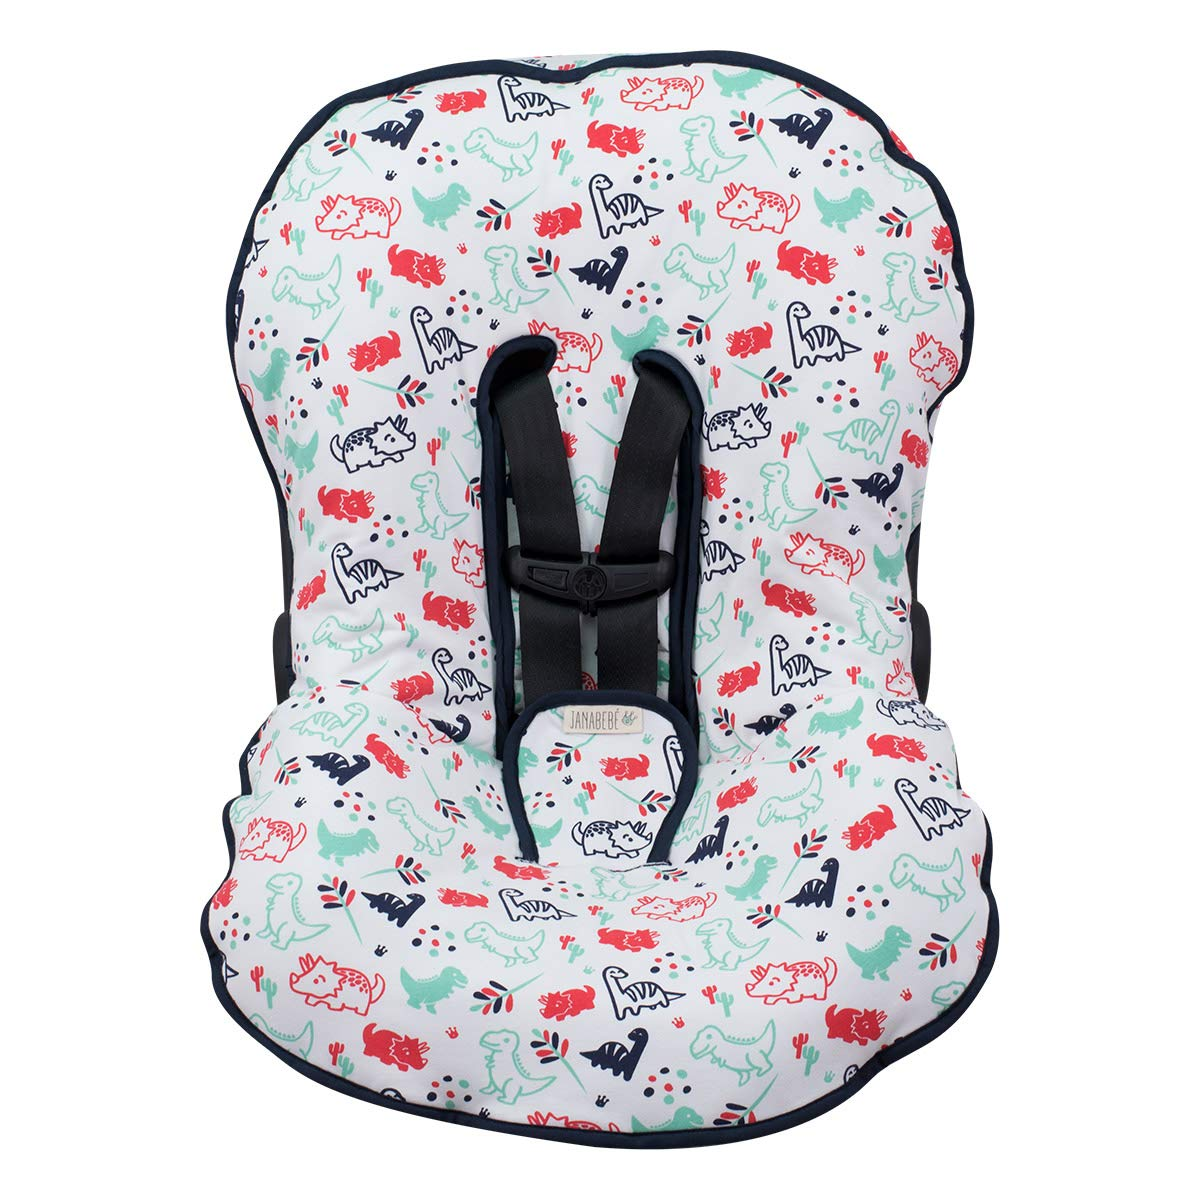 JANABEBÉ Universal Padded Cover Liner for Baby Carriers and CAR SEAT (Compatible with Maxi COSI MICO, CHICCO, BRITAX, ETC) (Dino Party)